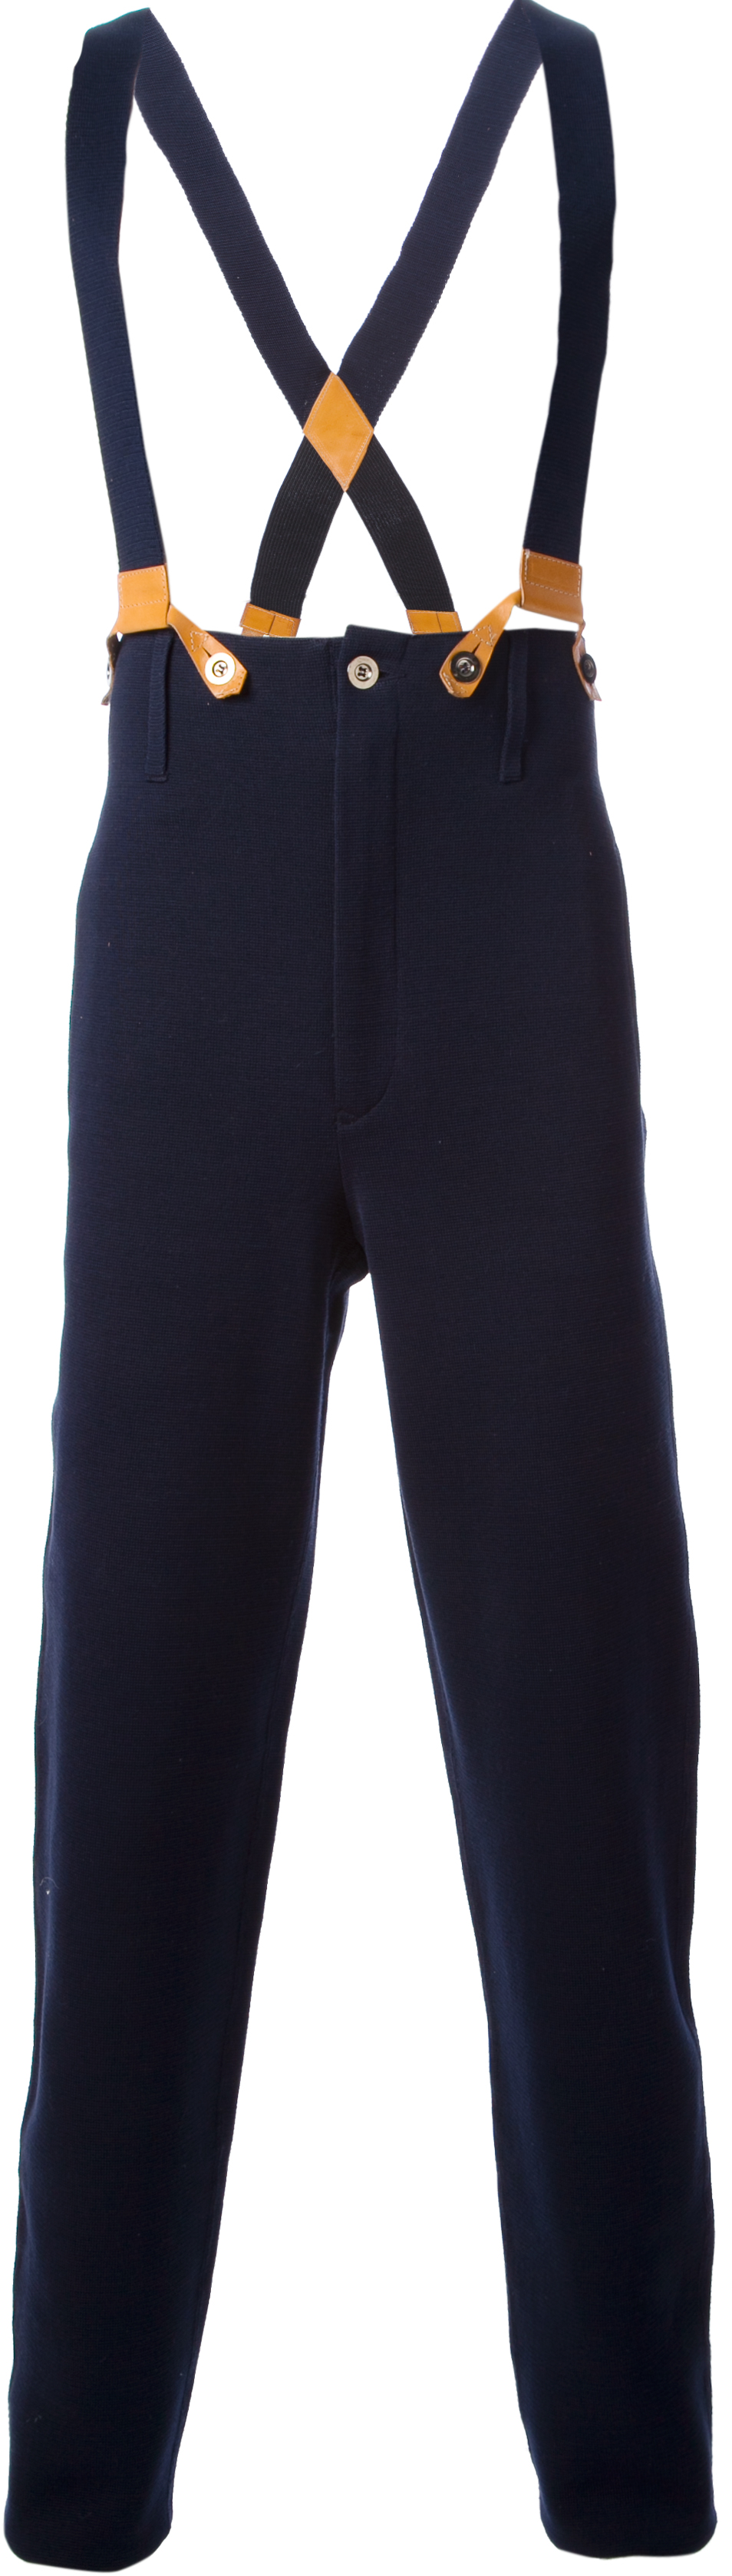 Jean Paul Gaultier dungaree trousers from SS84 collection, L'homme-Object